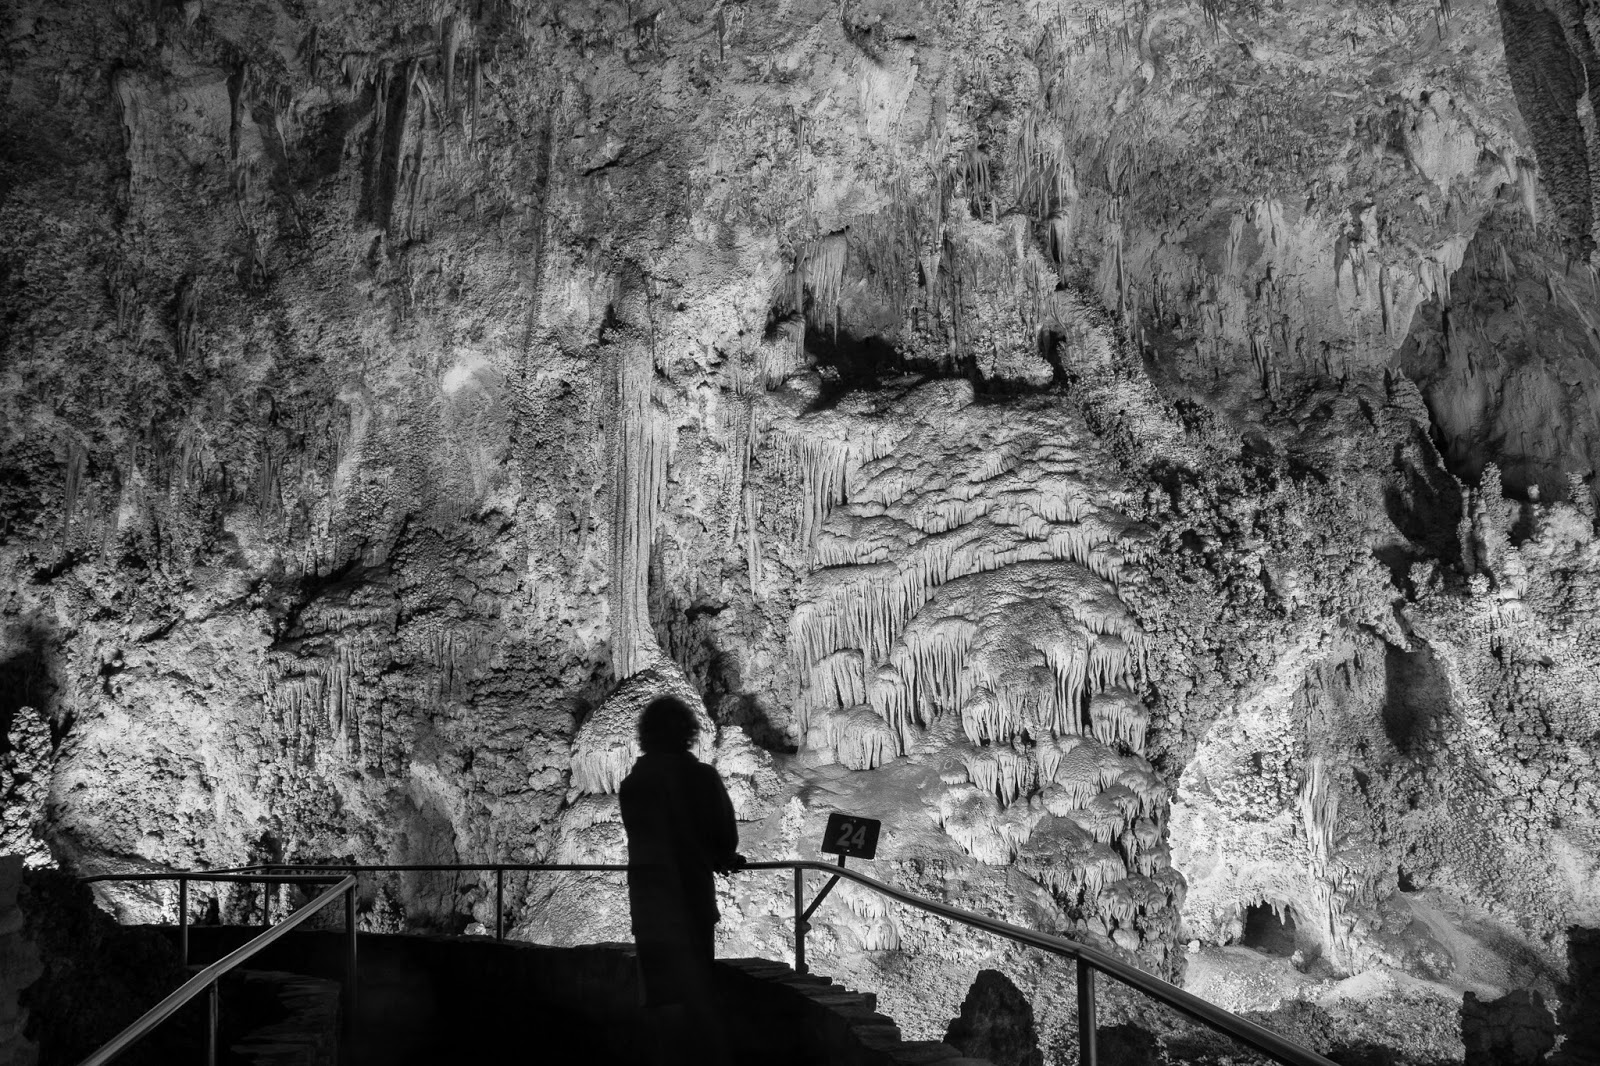 Carlsbad Caverns, Big Room